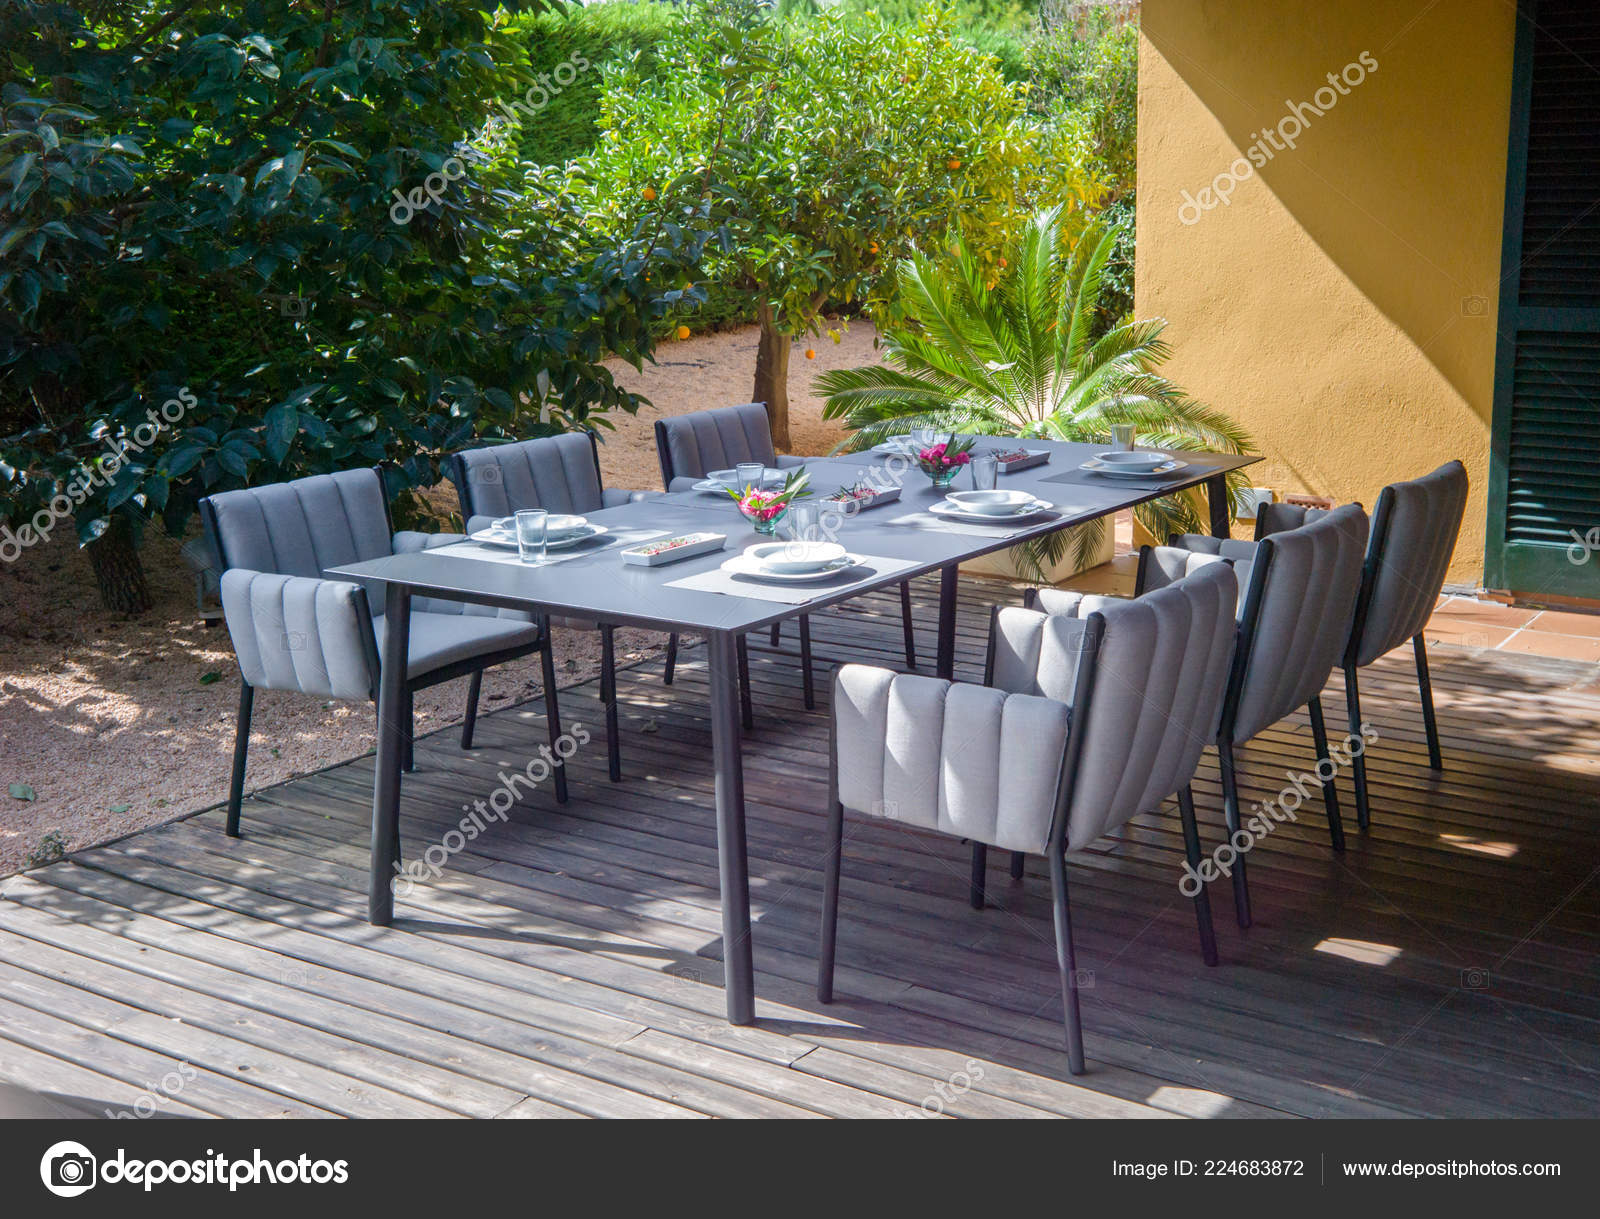 Phenomenal Garden Dining Table Chairs Stock Photo C Alexdancer 224683872 Onthecornerstone Fun Painted Chair Ideas Images Onthecornerstoneorg